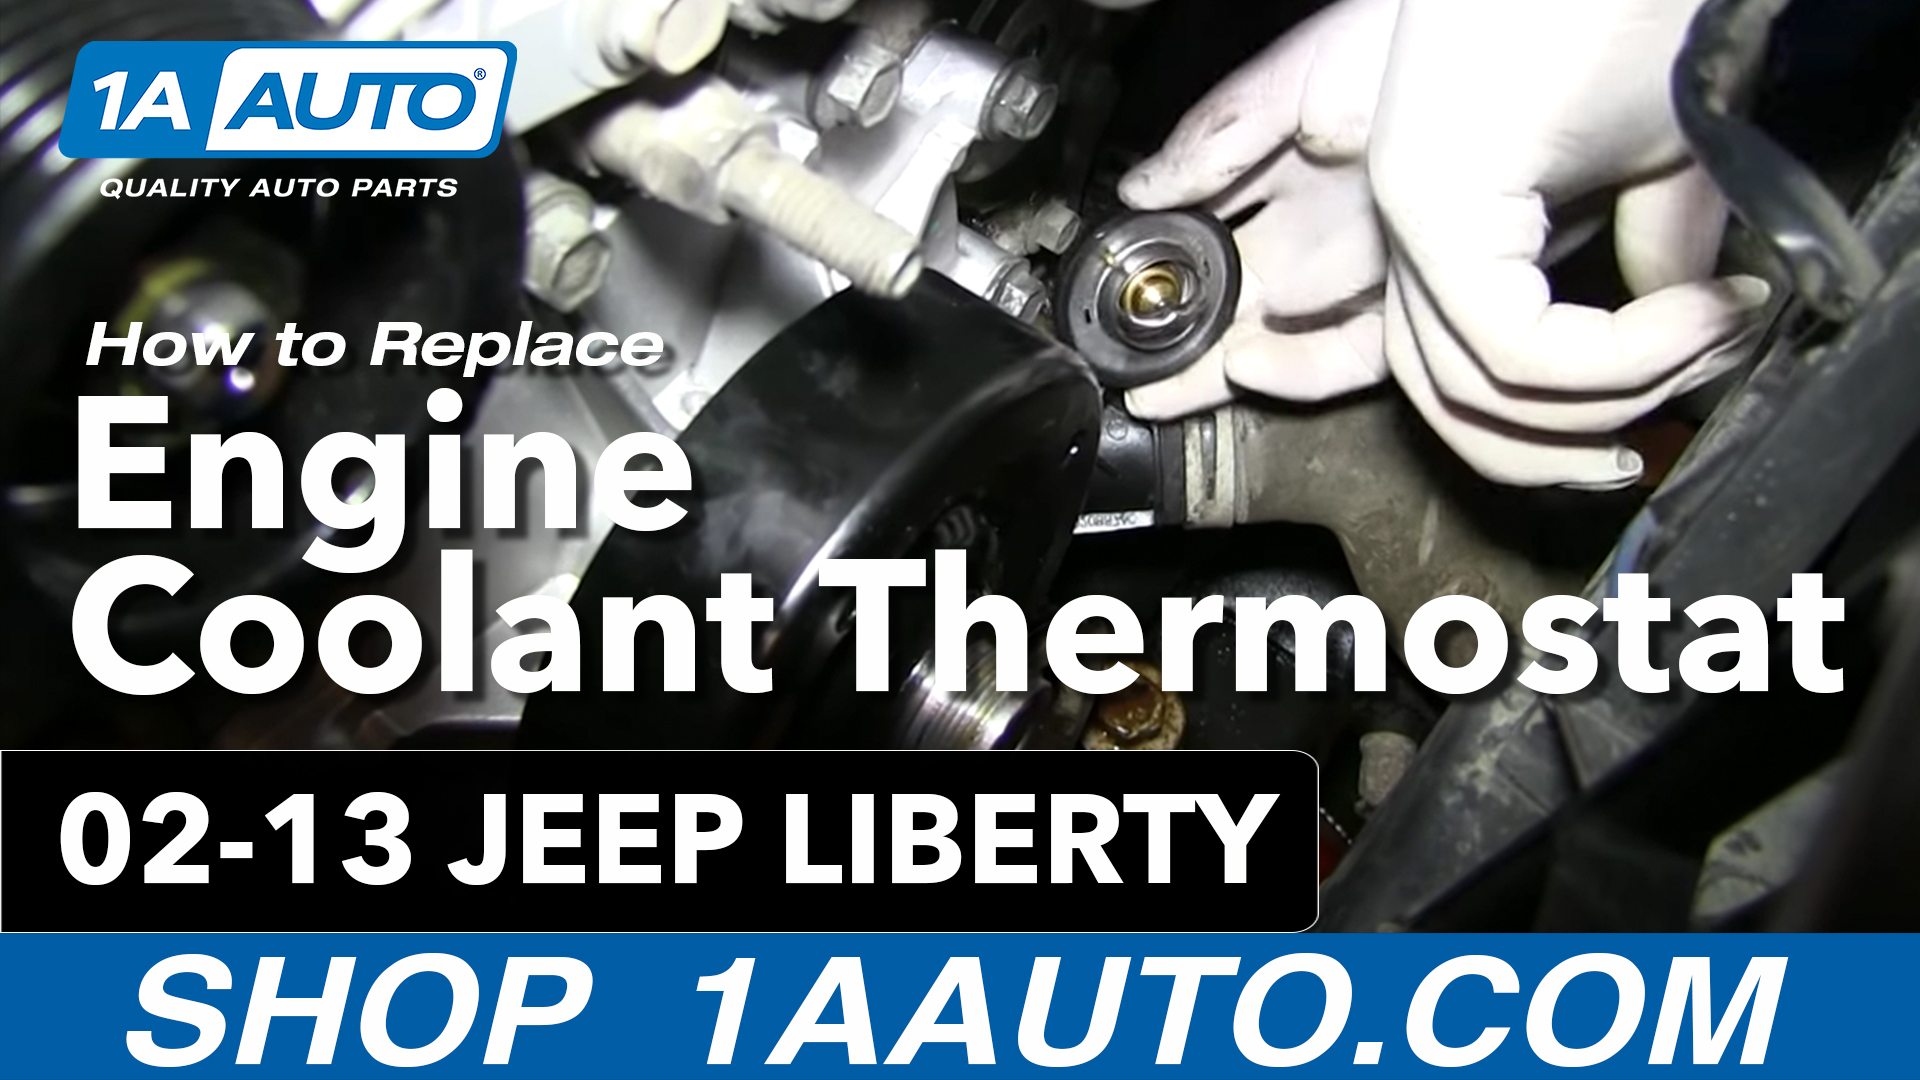 How To Replace Thermostat Housing 02-13 Jeep Liberty